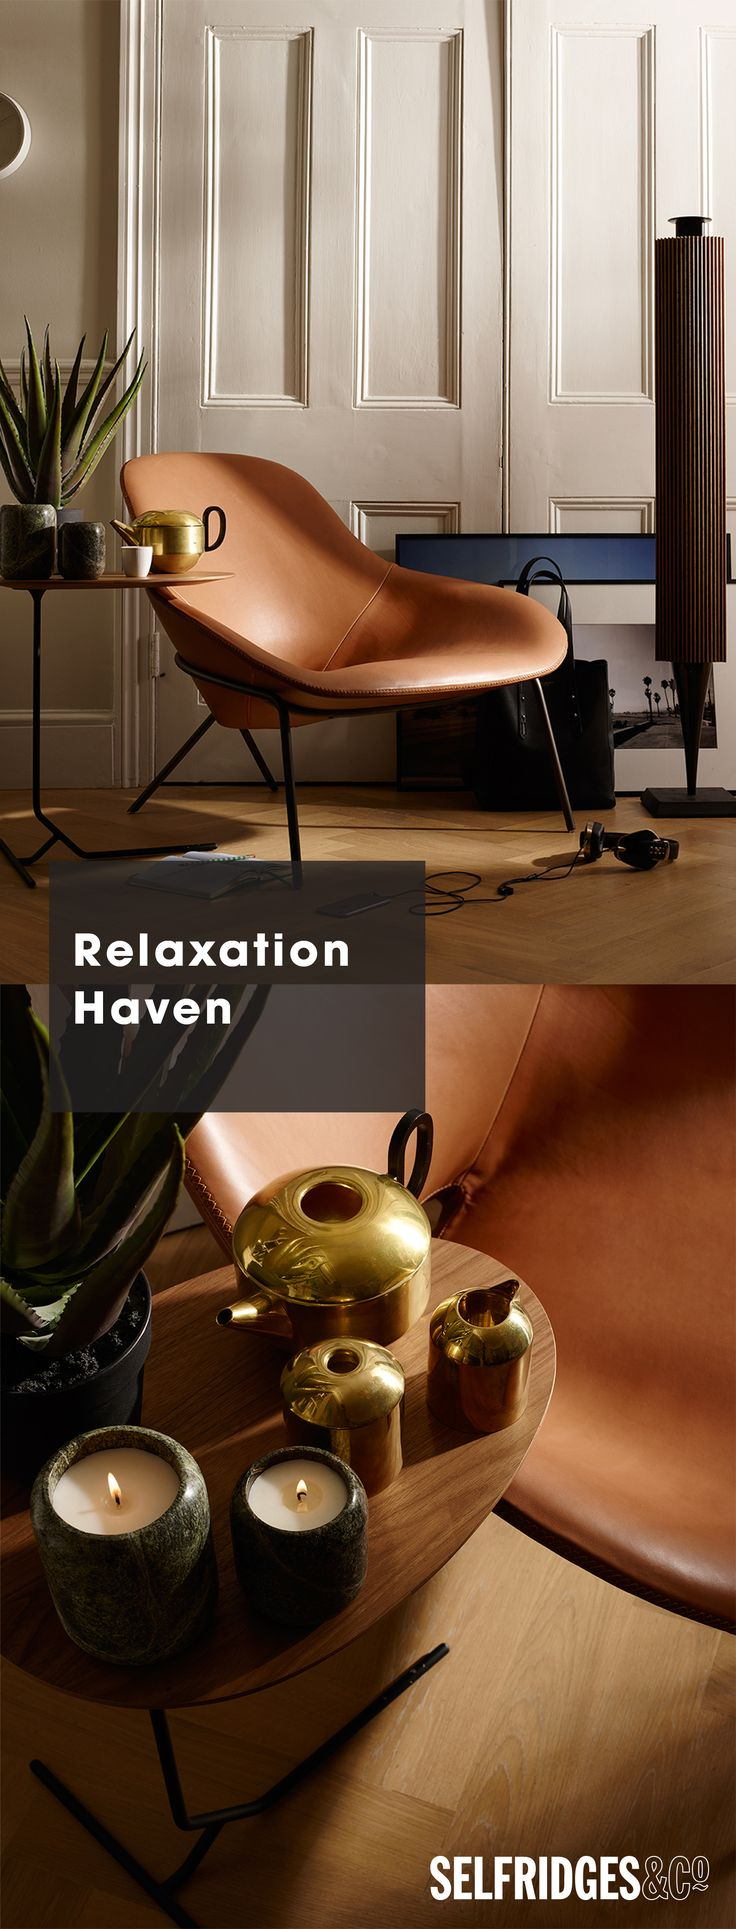 Discover and shop our showcase of the of the very best in new contemporary home design from Selfridges Designed for Living.   The Relaxation Haven: peace and quiet is something that's sometimes hard to come by in our busy lives.  Invite a relaxing atmosphere into your lounge through sophisticated décor.